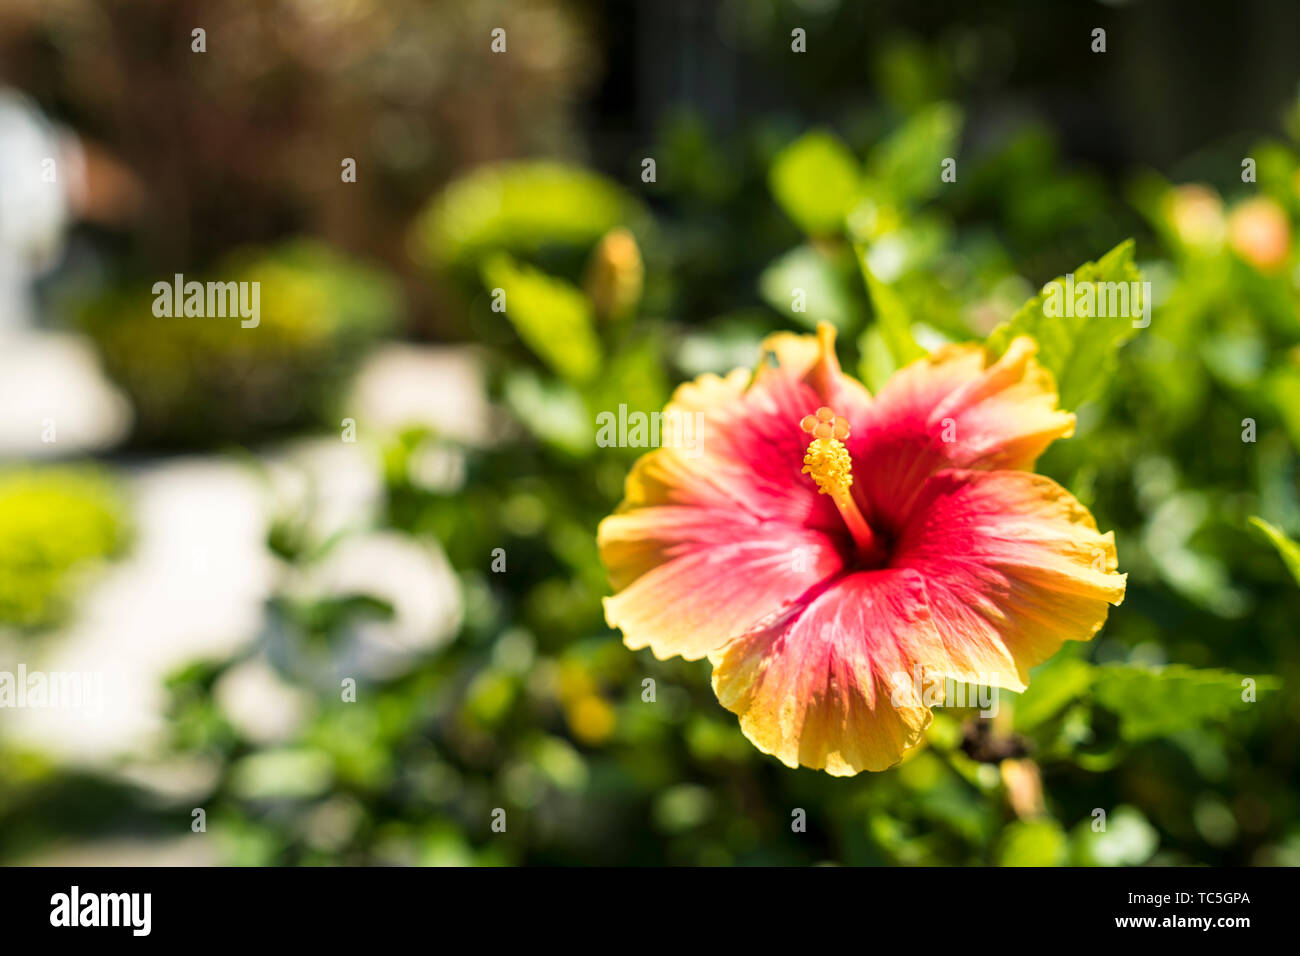 Two tones color hibiscus flowers blurred background - Stock Image